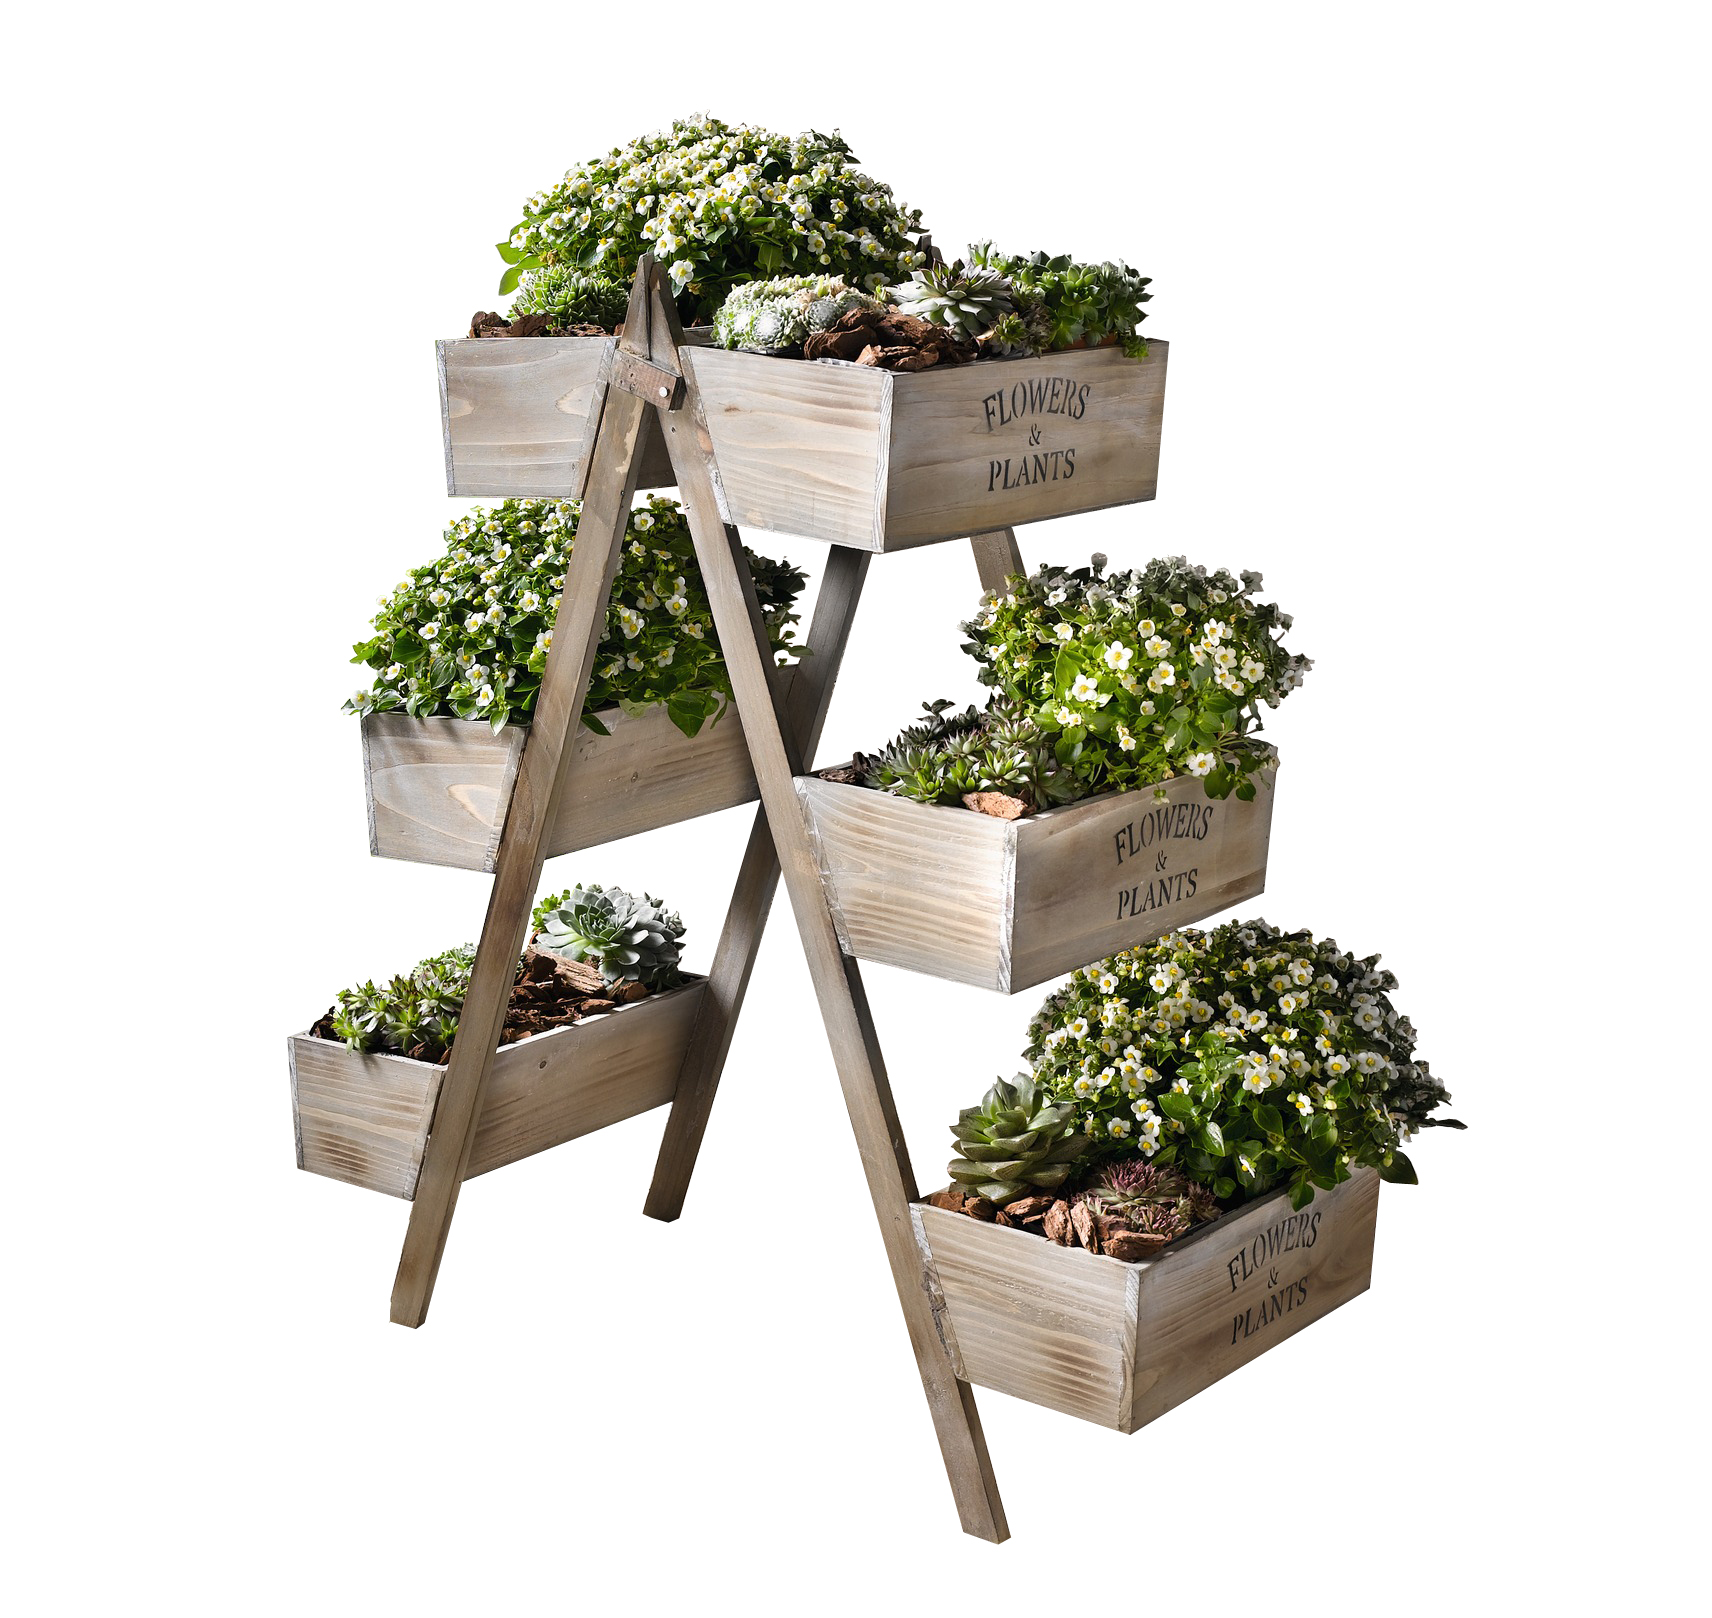 Flowers & Plants Foldable Wooden Plant Stand w  Six Seed Boxes by Kozy Life